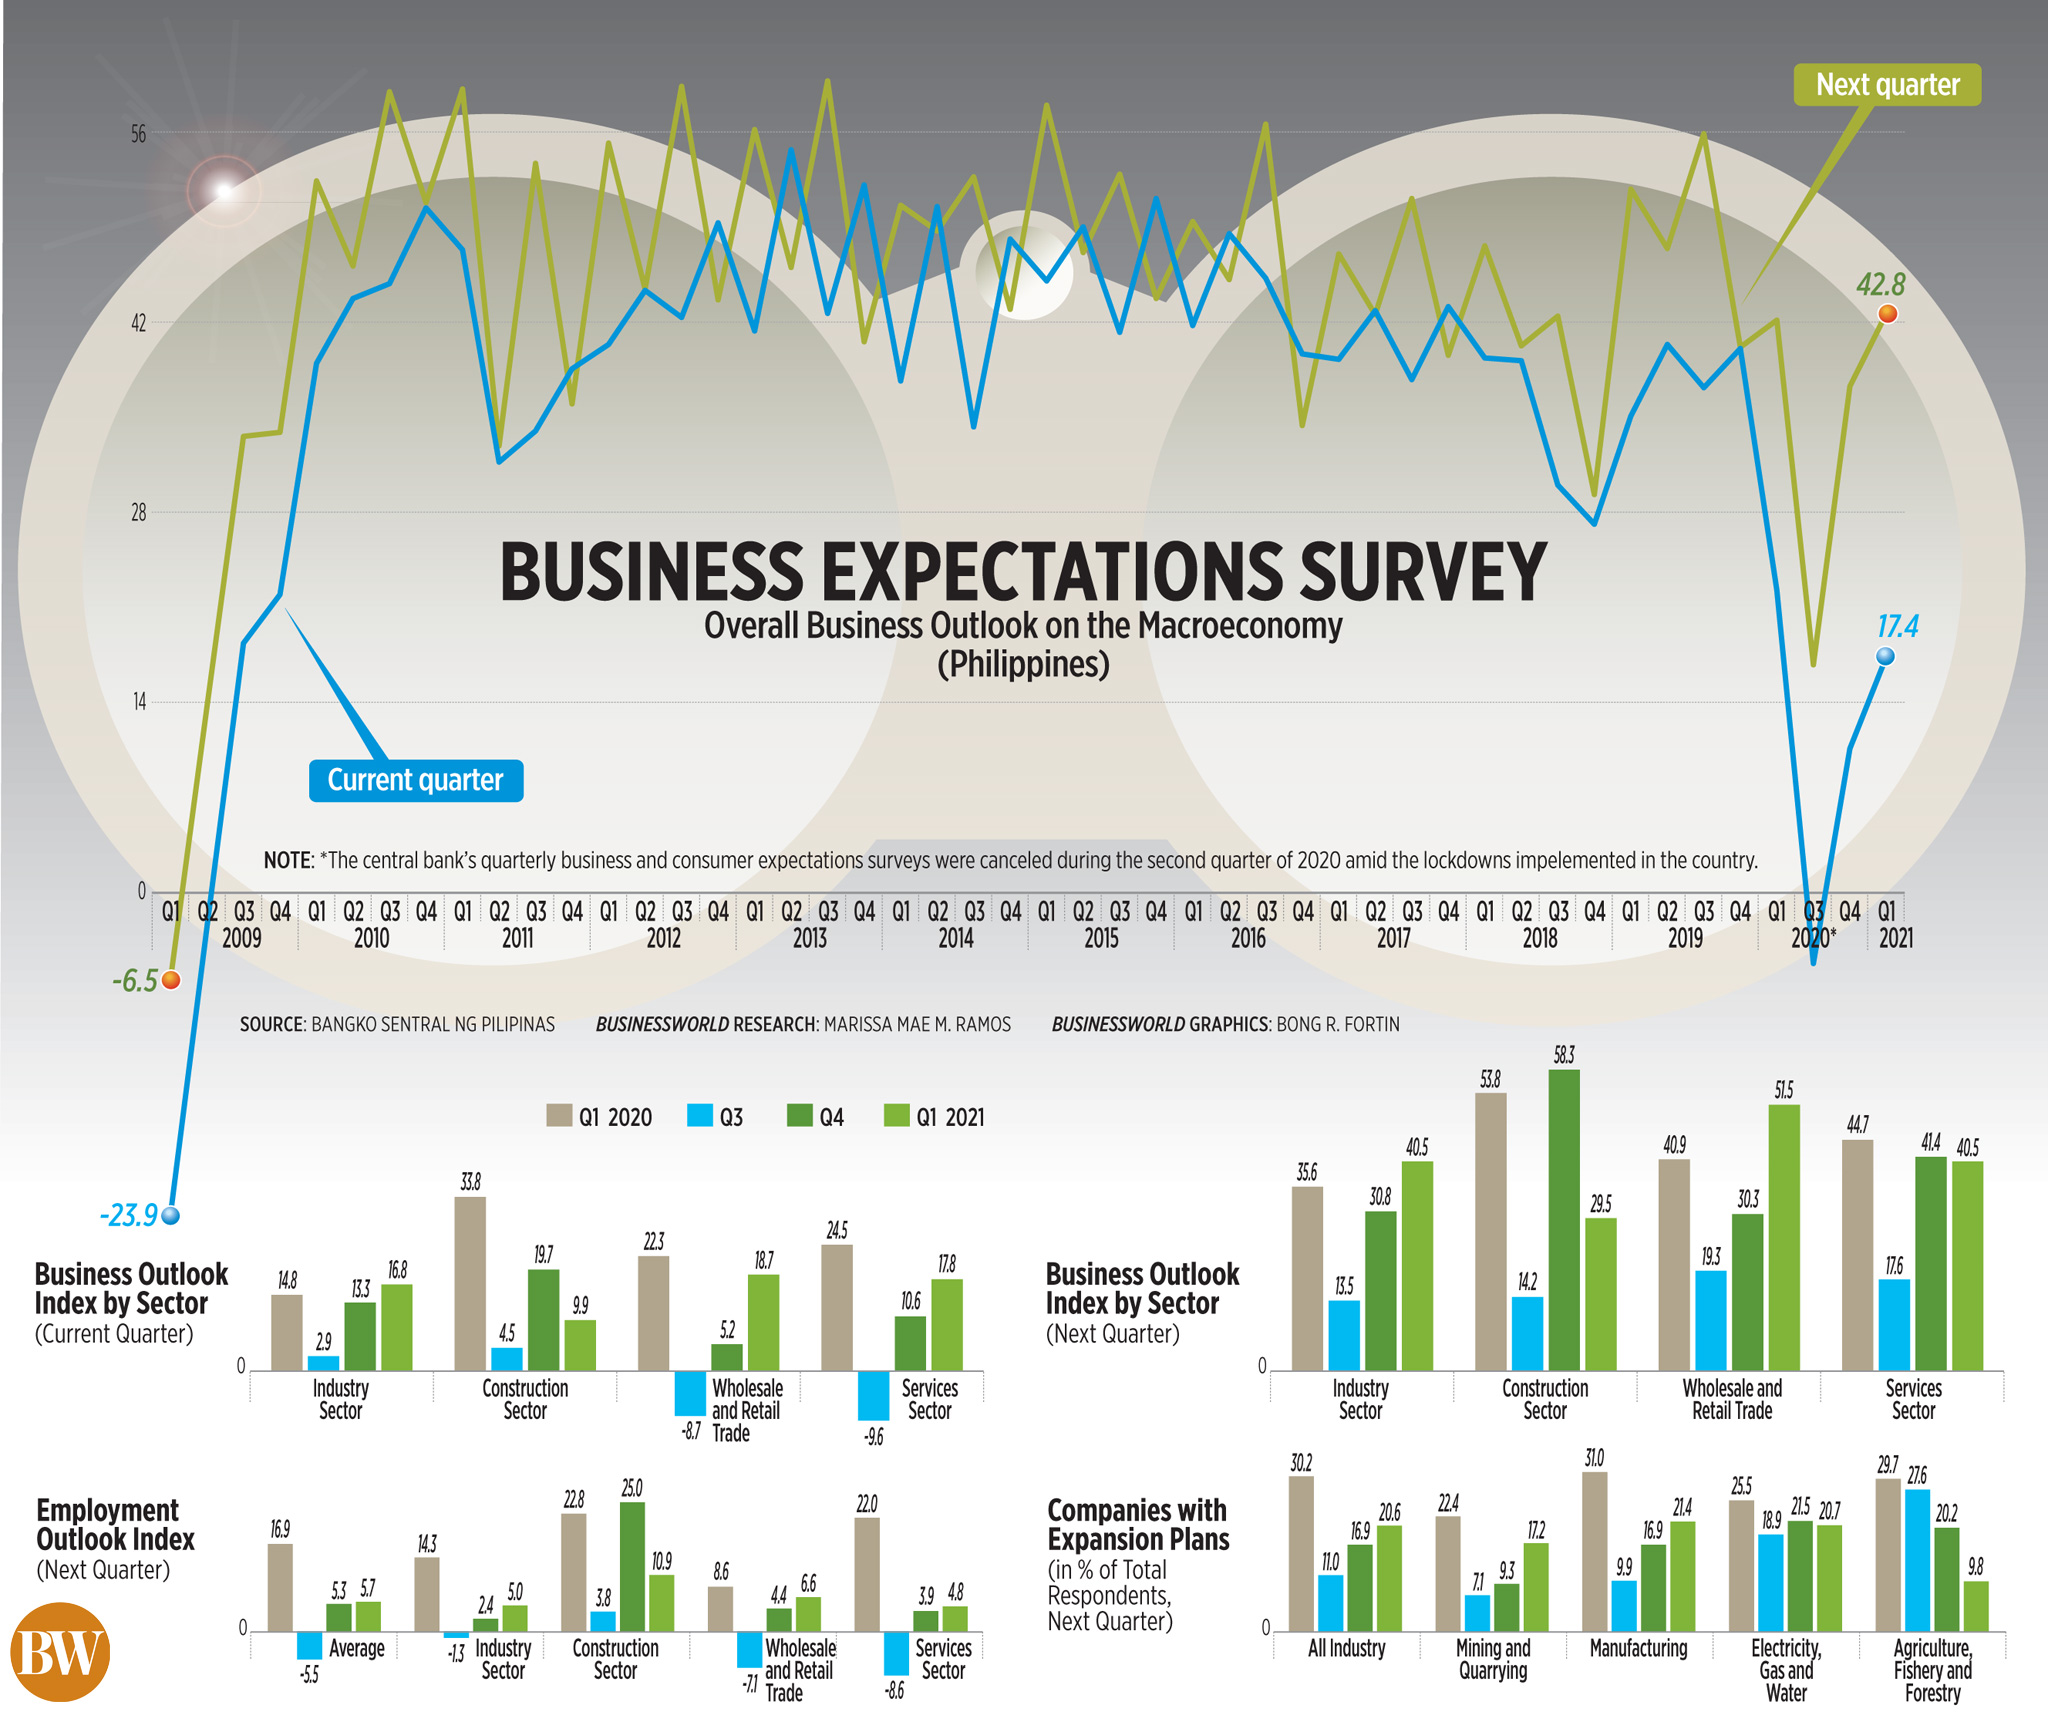 Business Expectations Survey